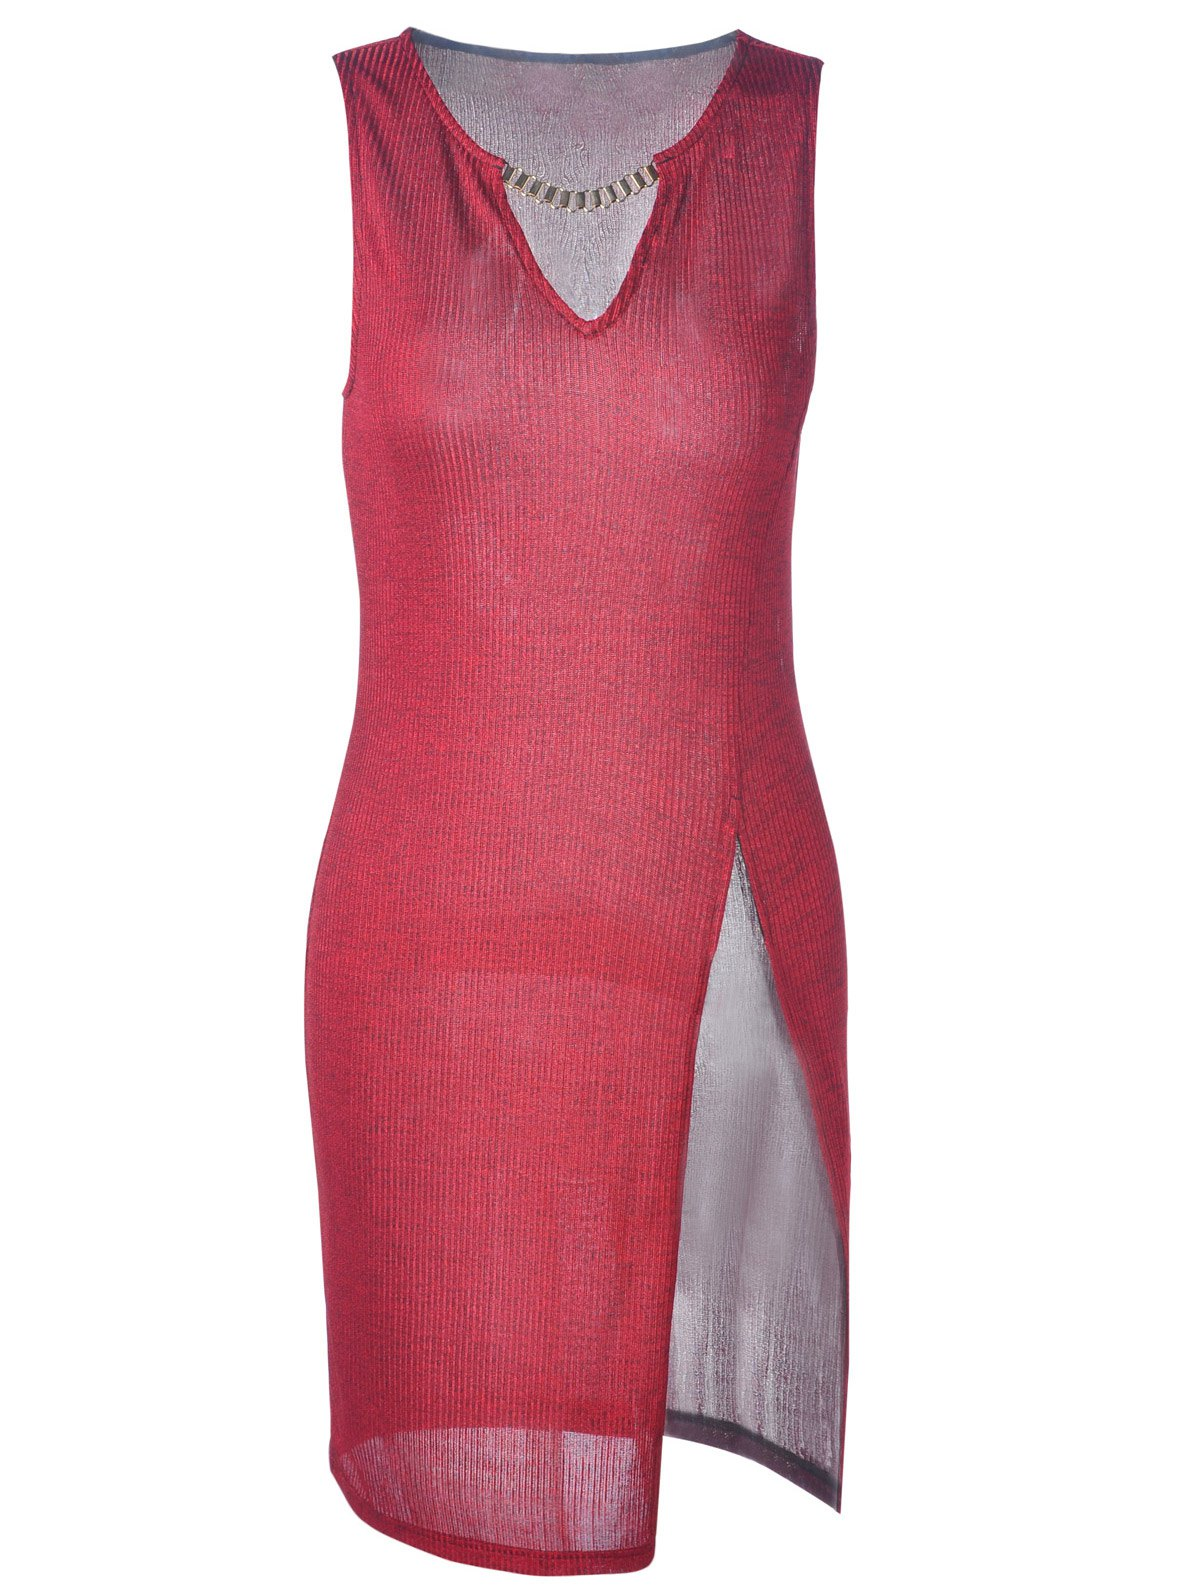 Fashionable Fitted Slit V-Neck ini Dress For Women - RED S